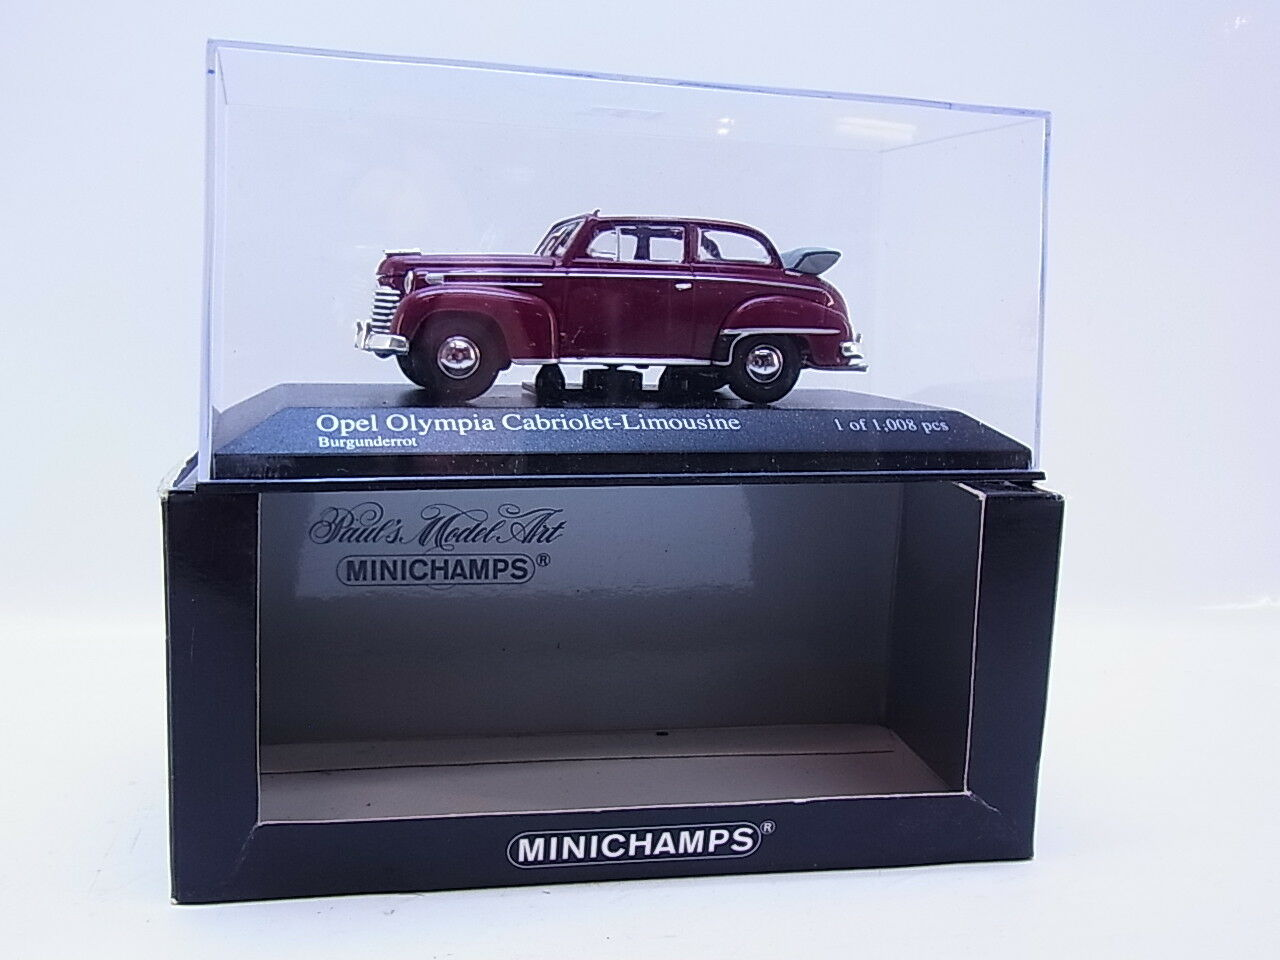 LOT 48129   Minichamps Opel Olympia Cabriolet-Limousine Modellauto red 1 43 OVP